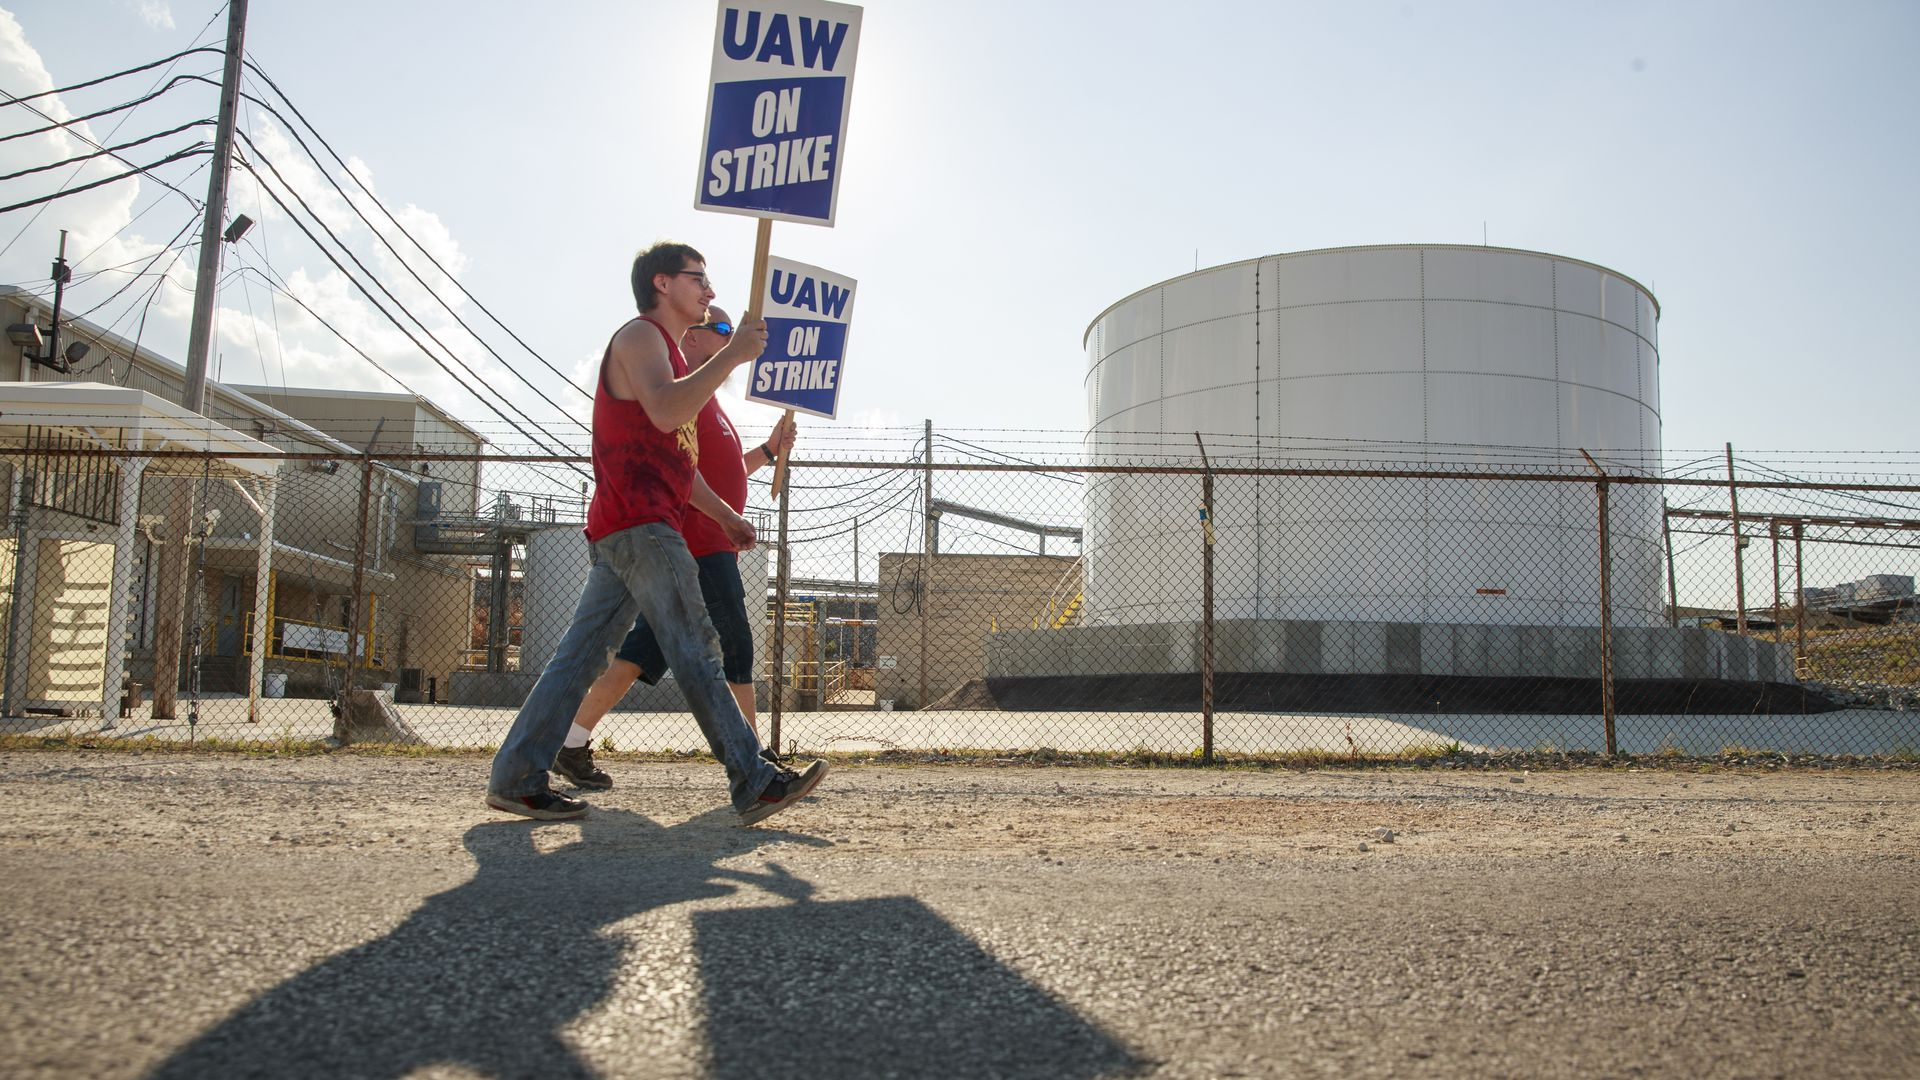 Workers from United Auto Workers picket during national labor strike against GM.